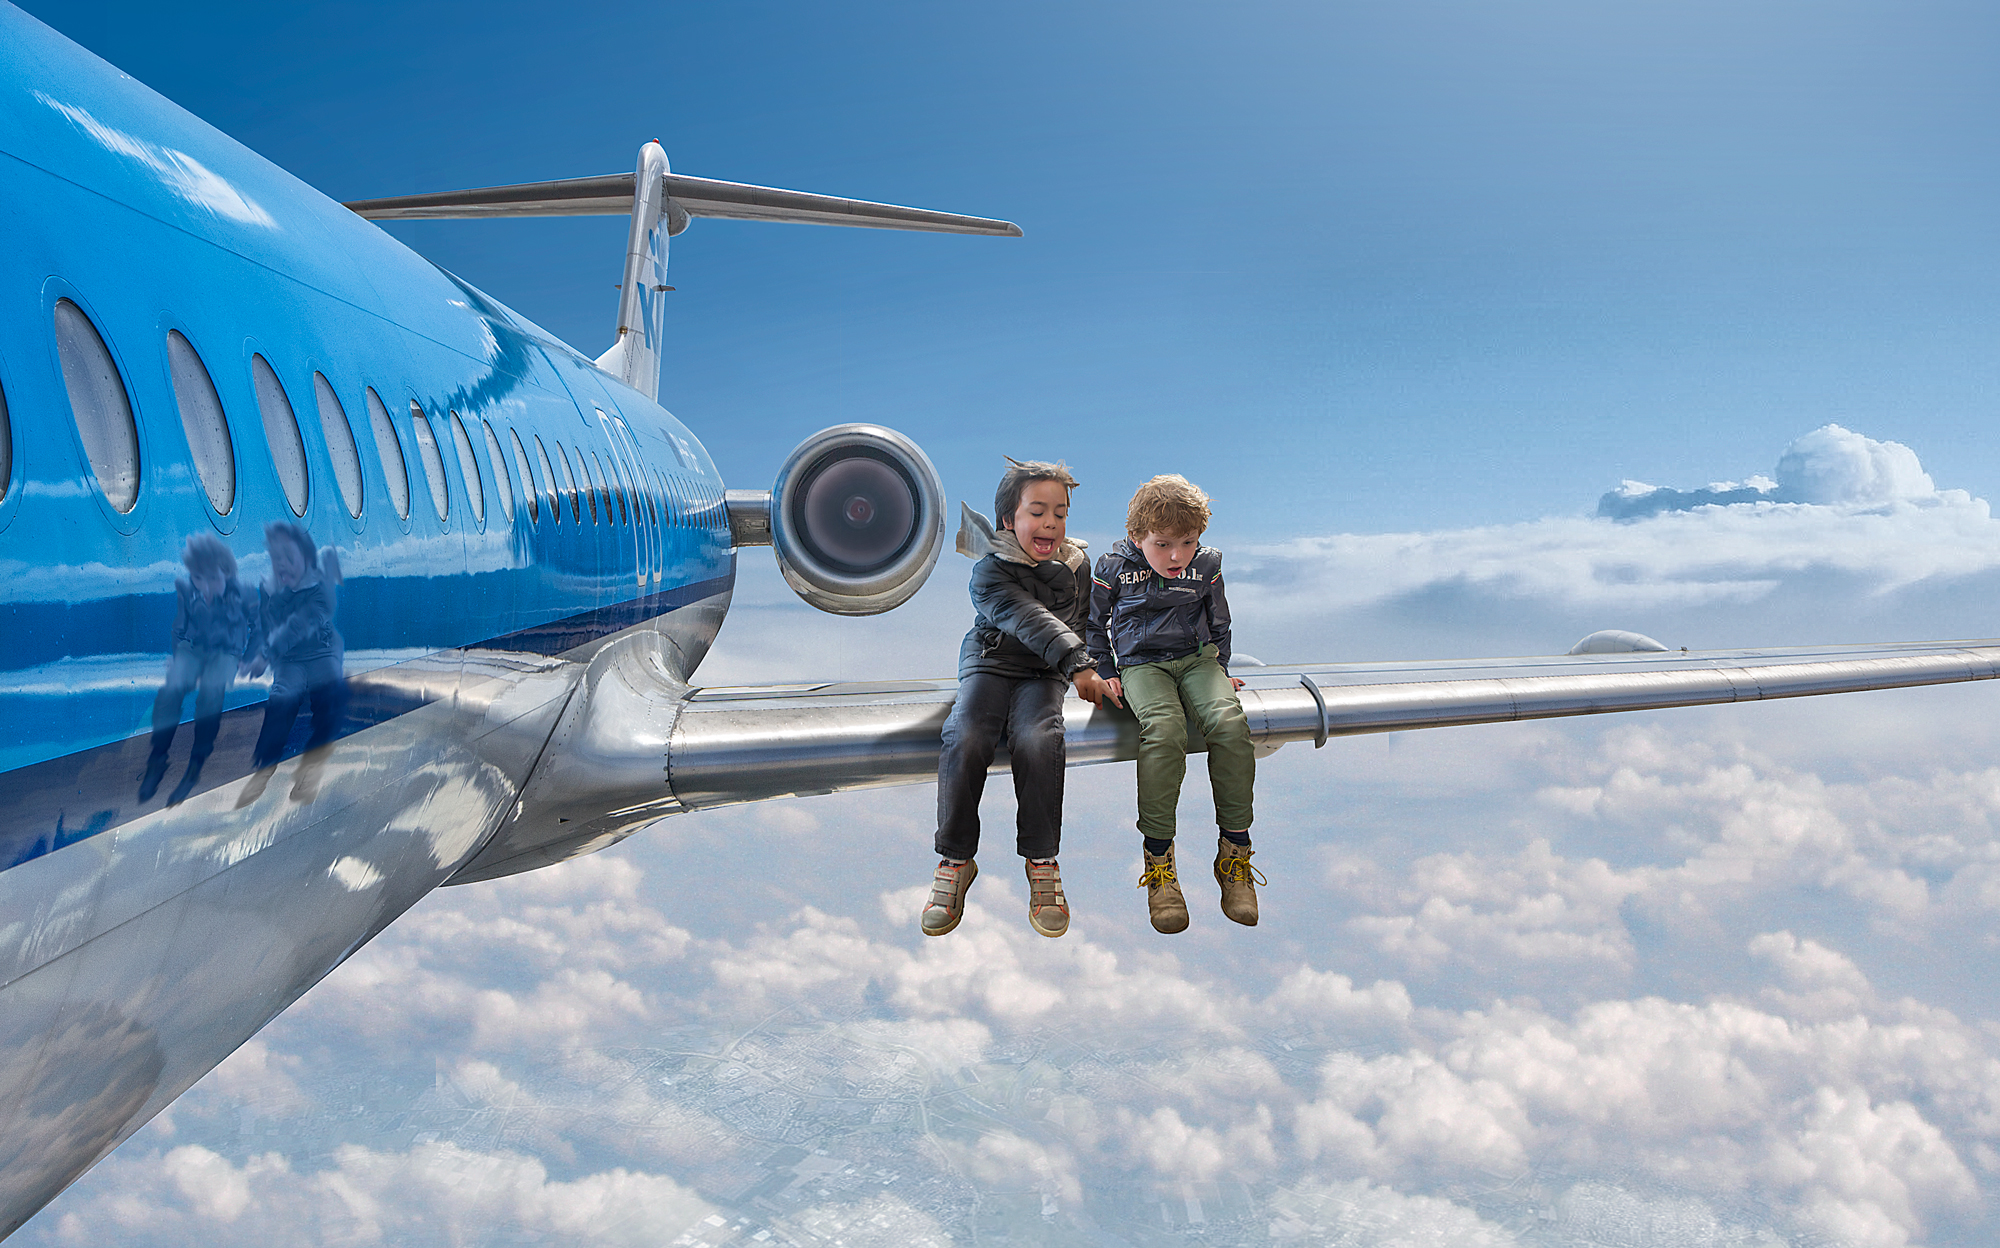 The Surreal and Surprising World of Adrian Sommeling